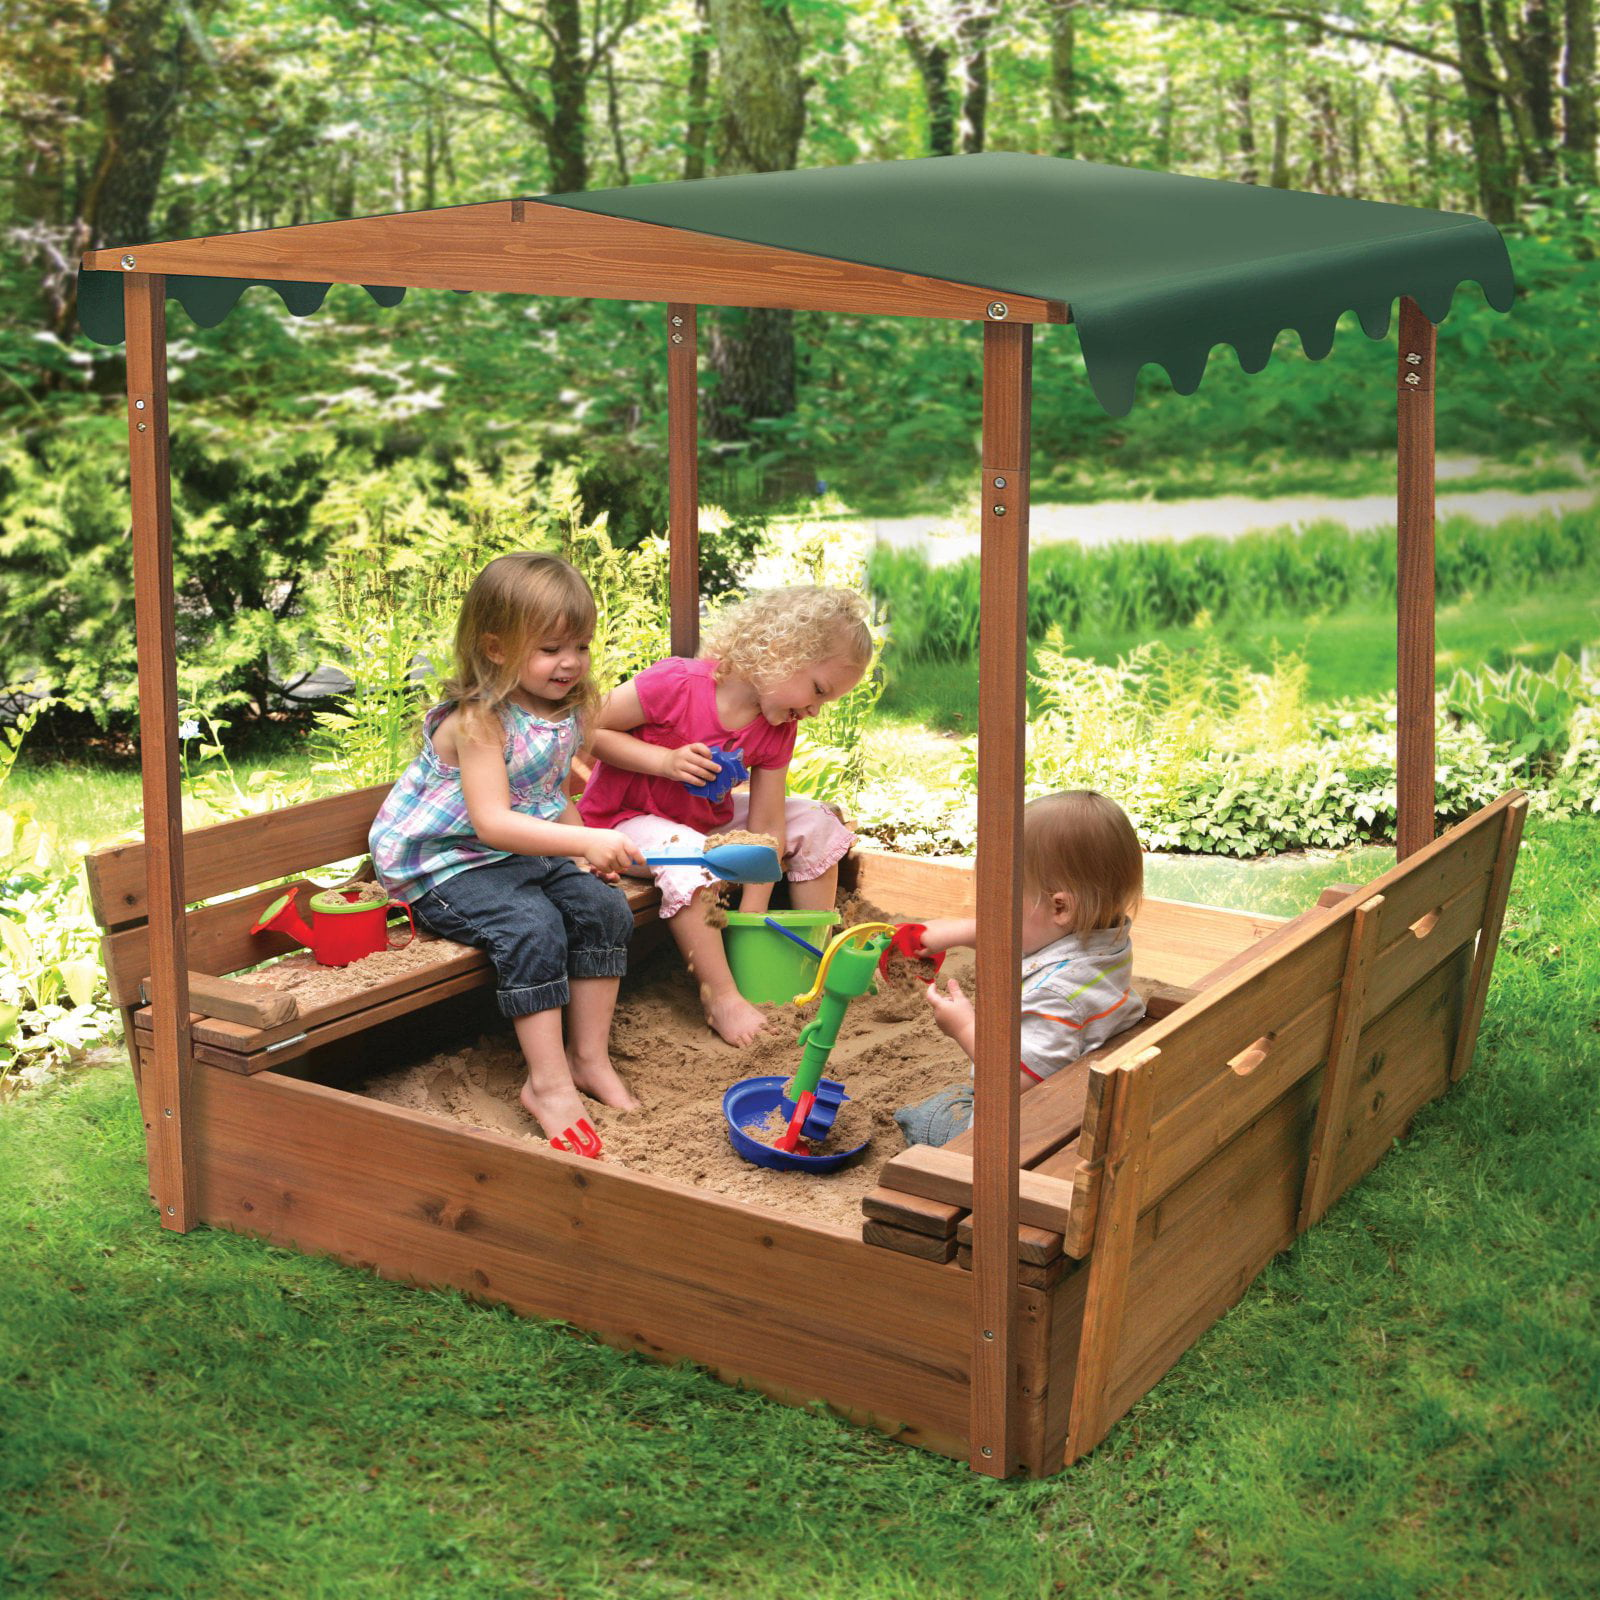 Badger Basket Covered Convertible Cedar Sandbox with Canopy and 2 Bench Seats by Badger Basket